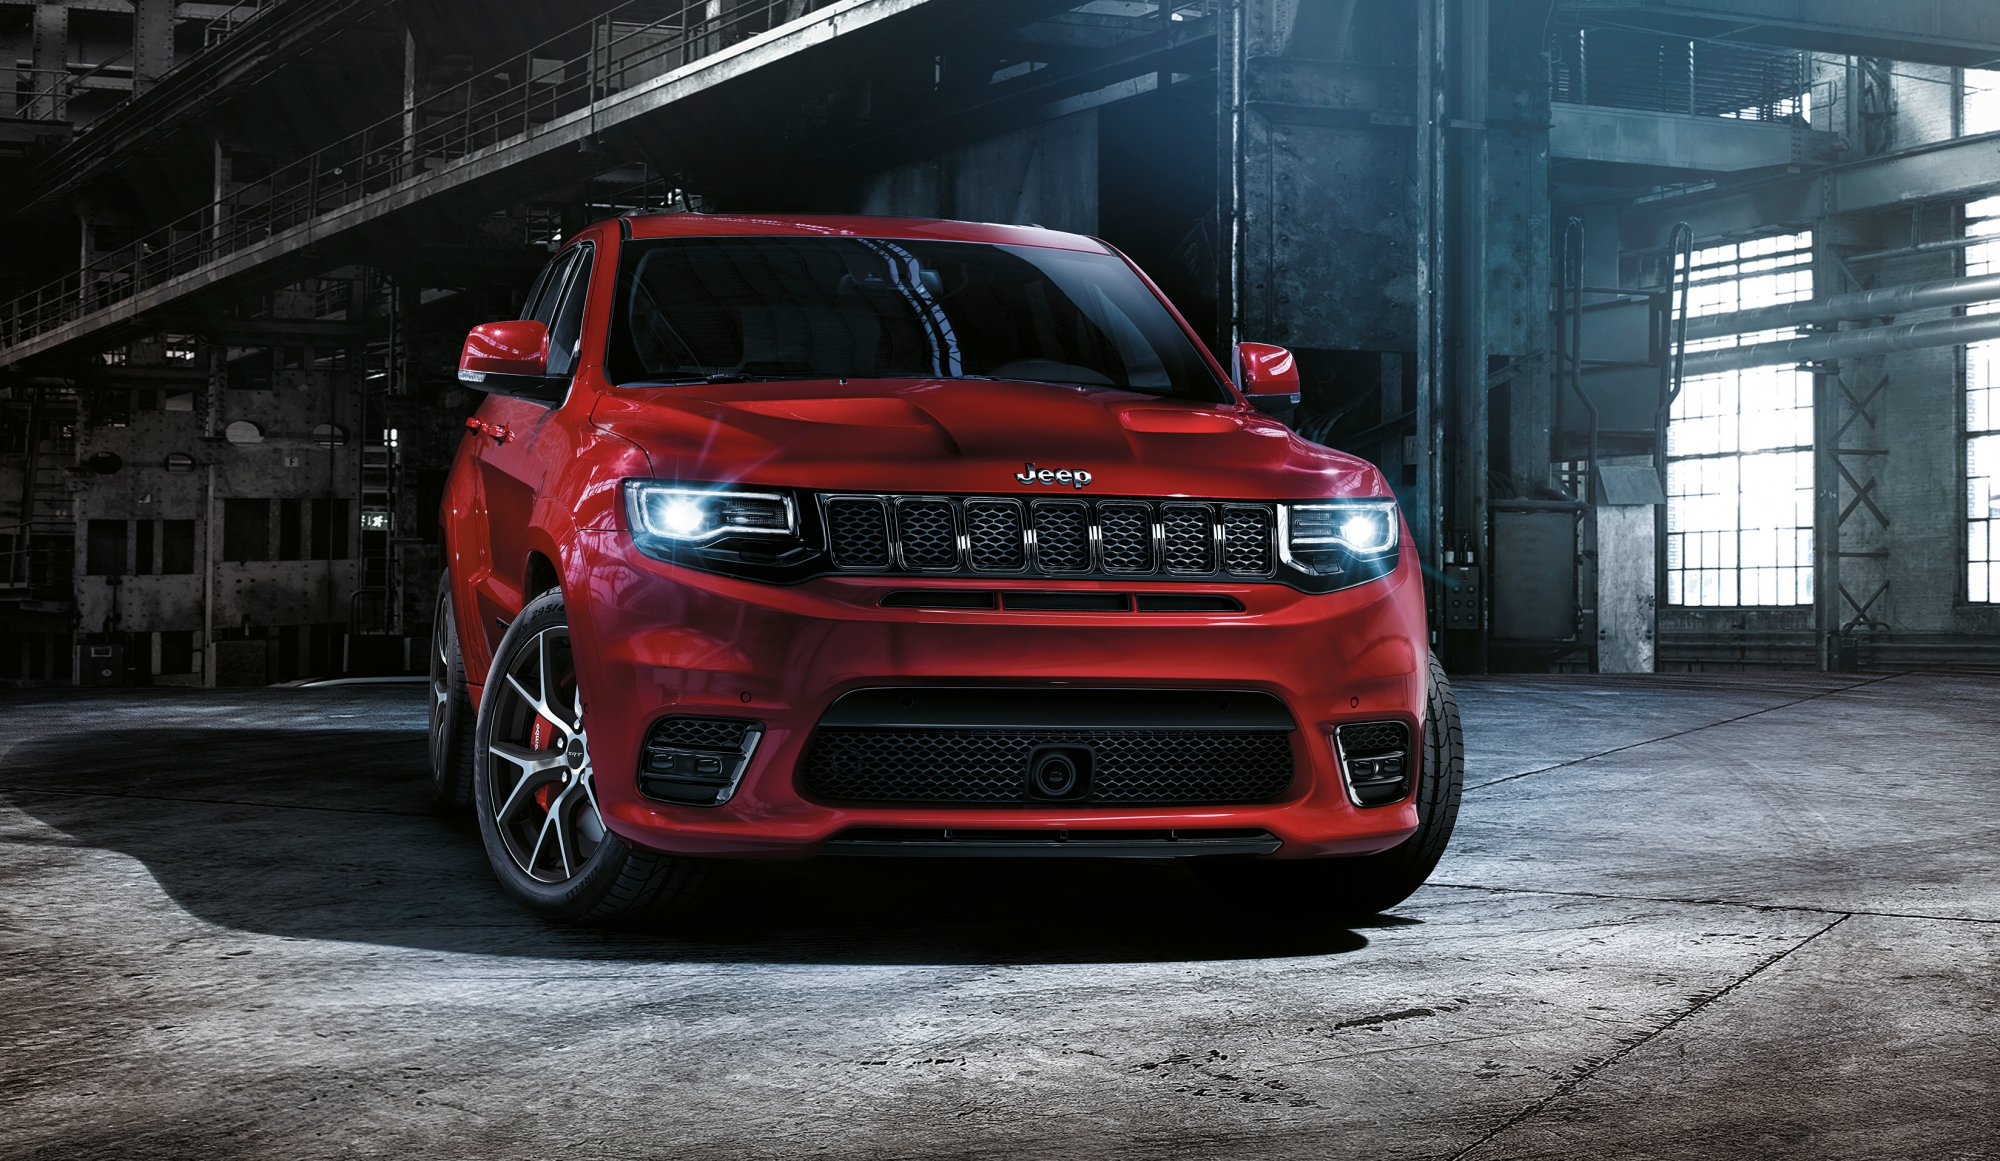 Jeep Srt 8 2017 >> News - Jeep Readying 527kW Grand Cherokee 'Trackhawk' For New York